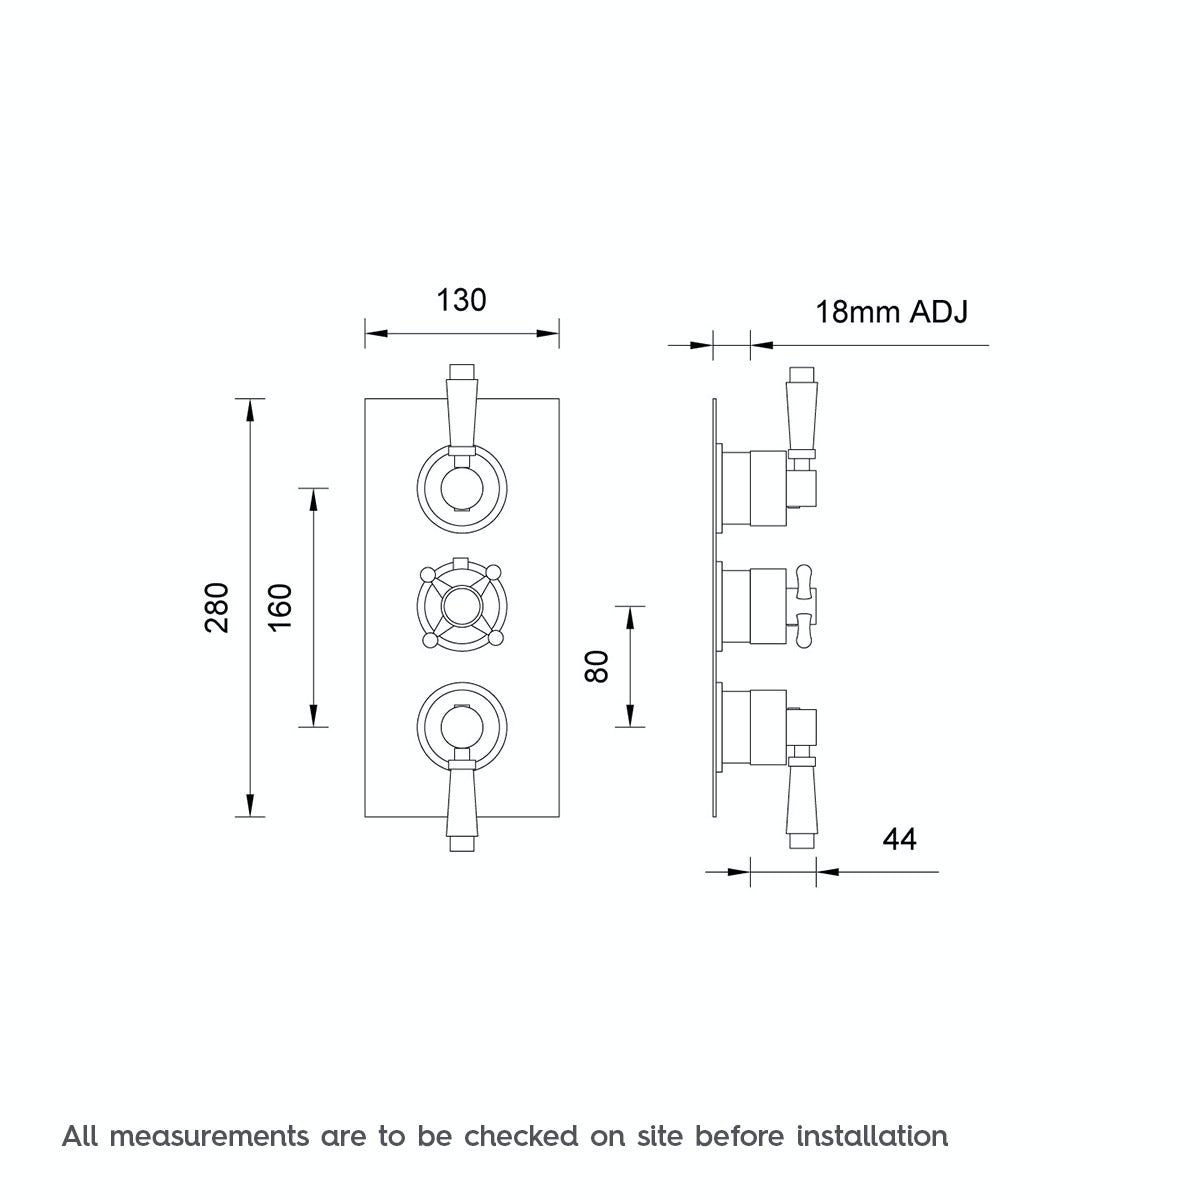 Dimensions for The Bath Co. Traditional square triple thermostatic shower valve with diverter